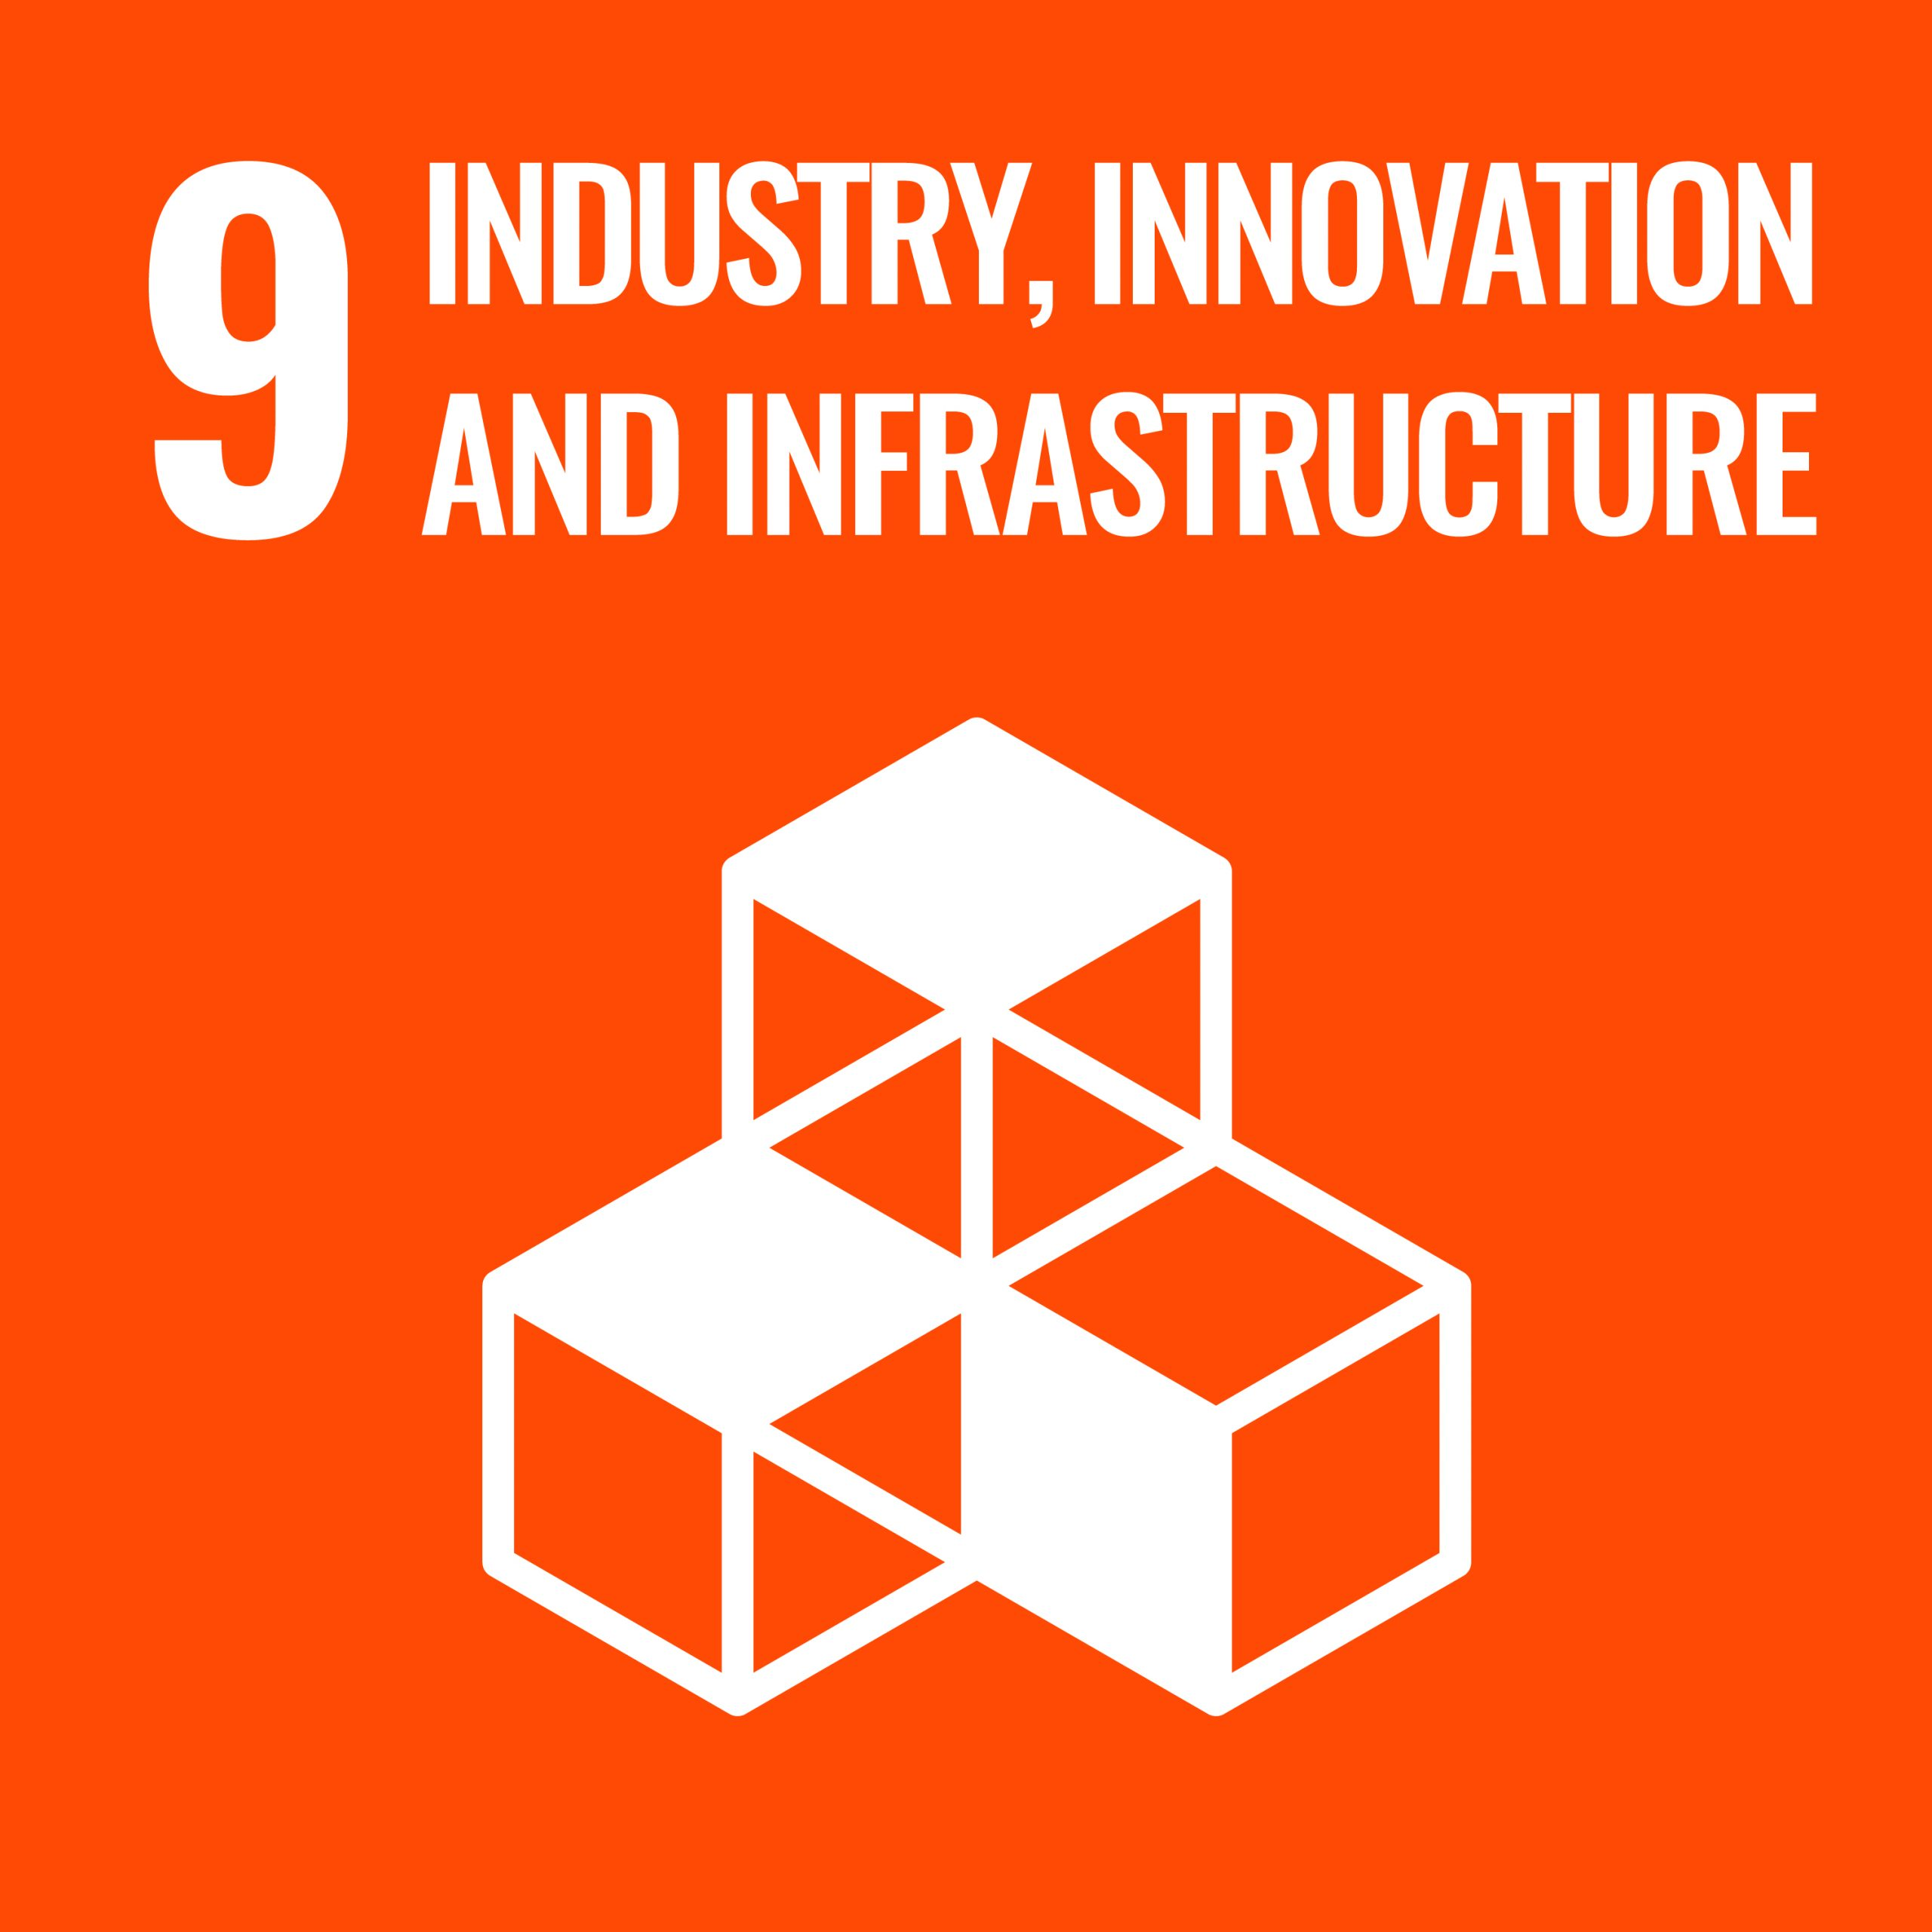 Industry, innovation and Infrastructure - SDG 9